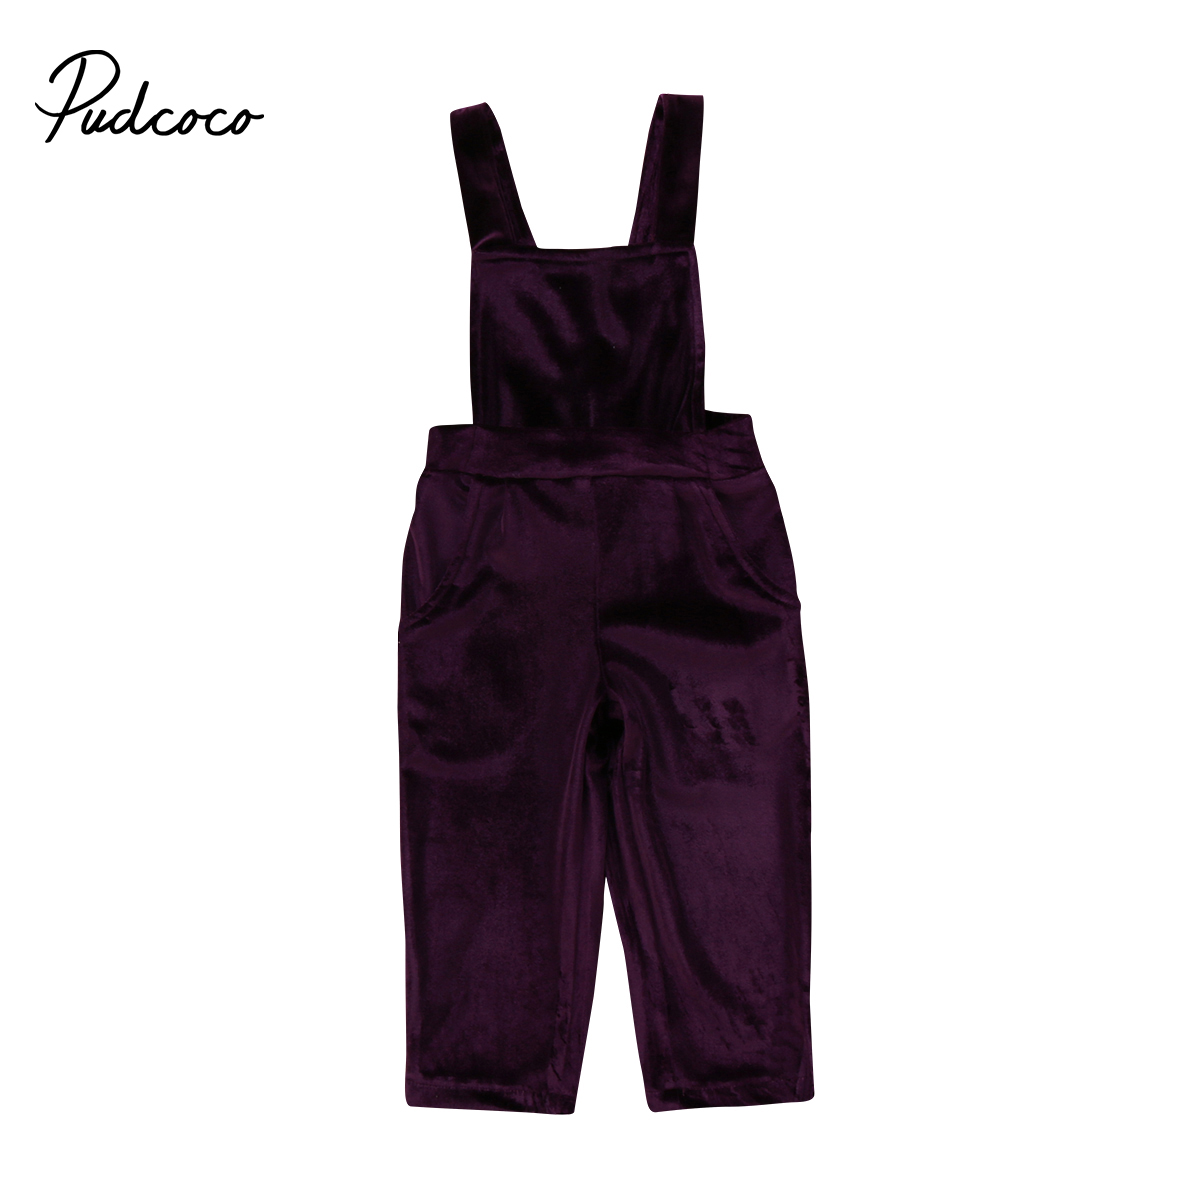 974a748ba1d Cute Summer Kids Baby Girls Velvet Overalls Solid color bandage backless  Jumpsuit Bib Pants Outfit Clothes sleeveless Overalls